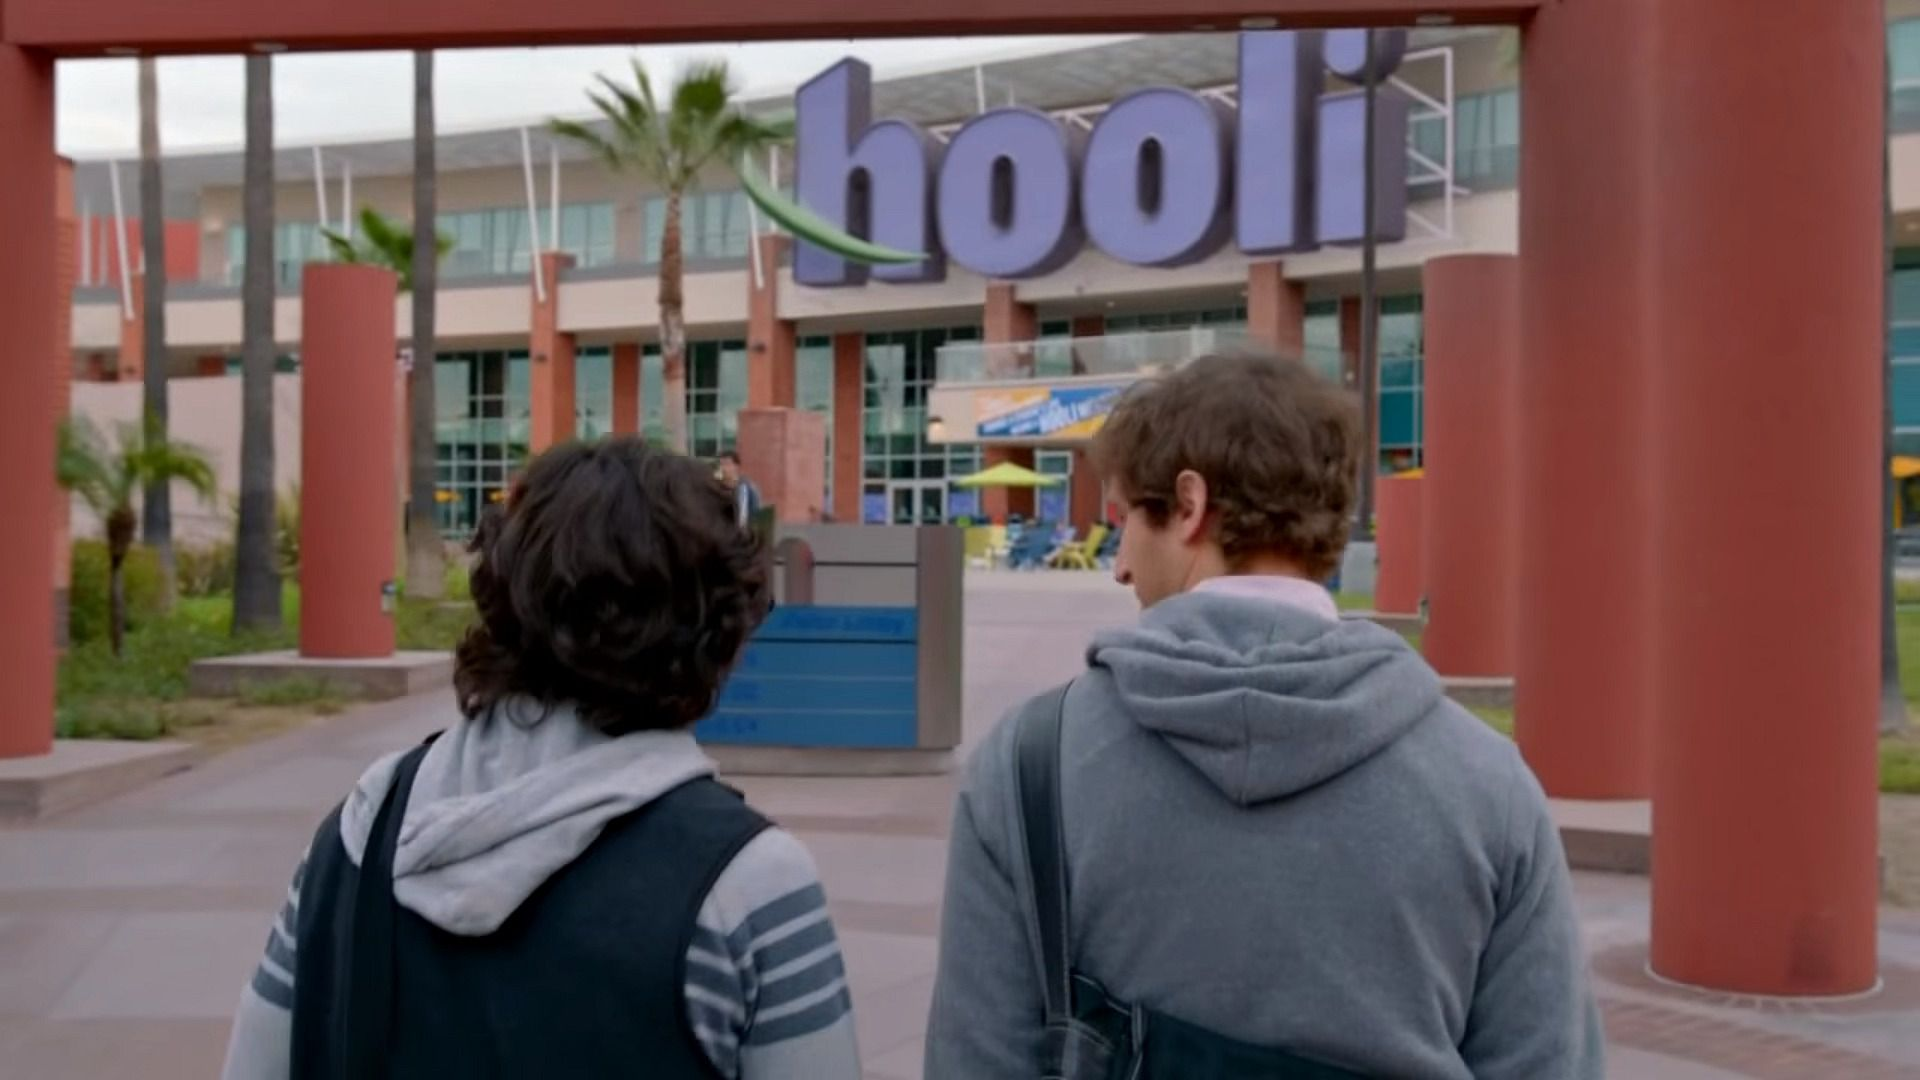 Hooli offices: Silicon Valley Filming Locations